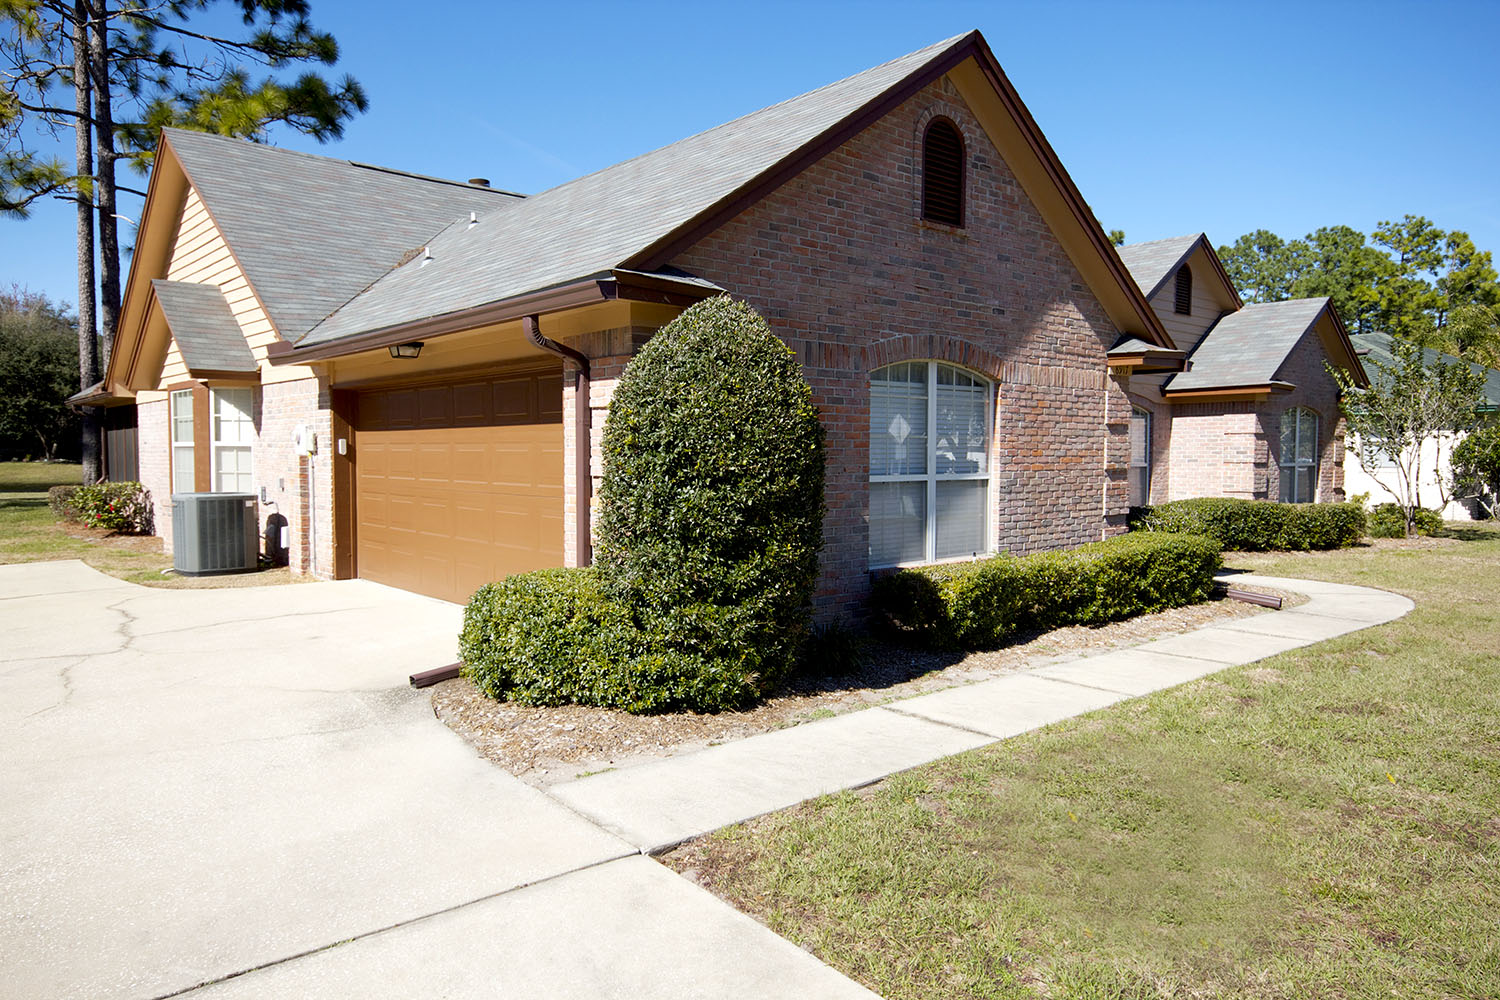 Houses for sale in chimney lakes jacksonville fl - 4 bedroom homes for sale in jacksonville fl ...